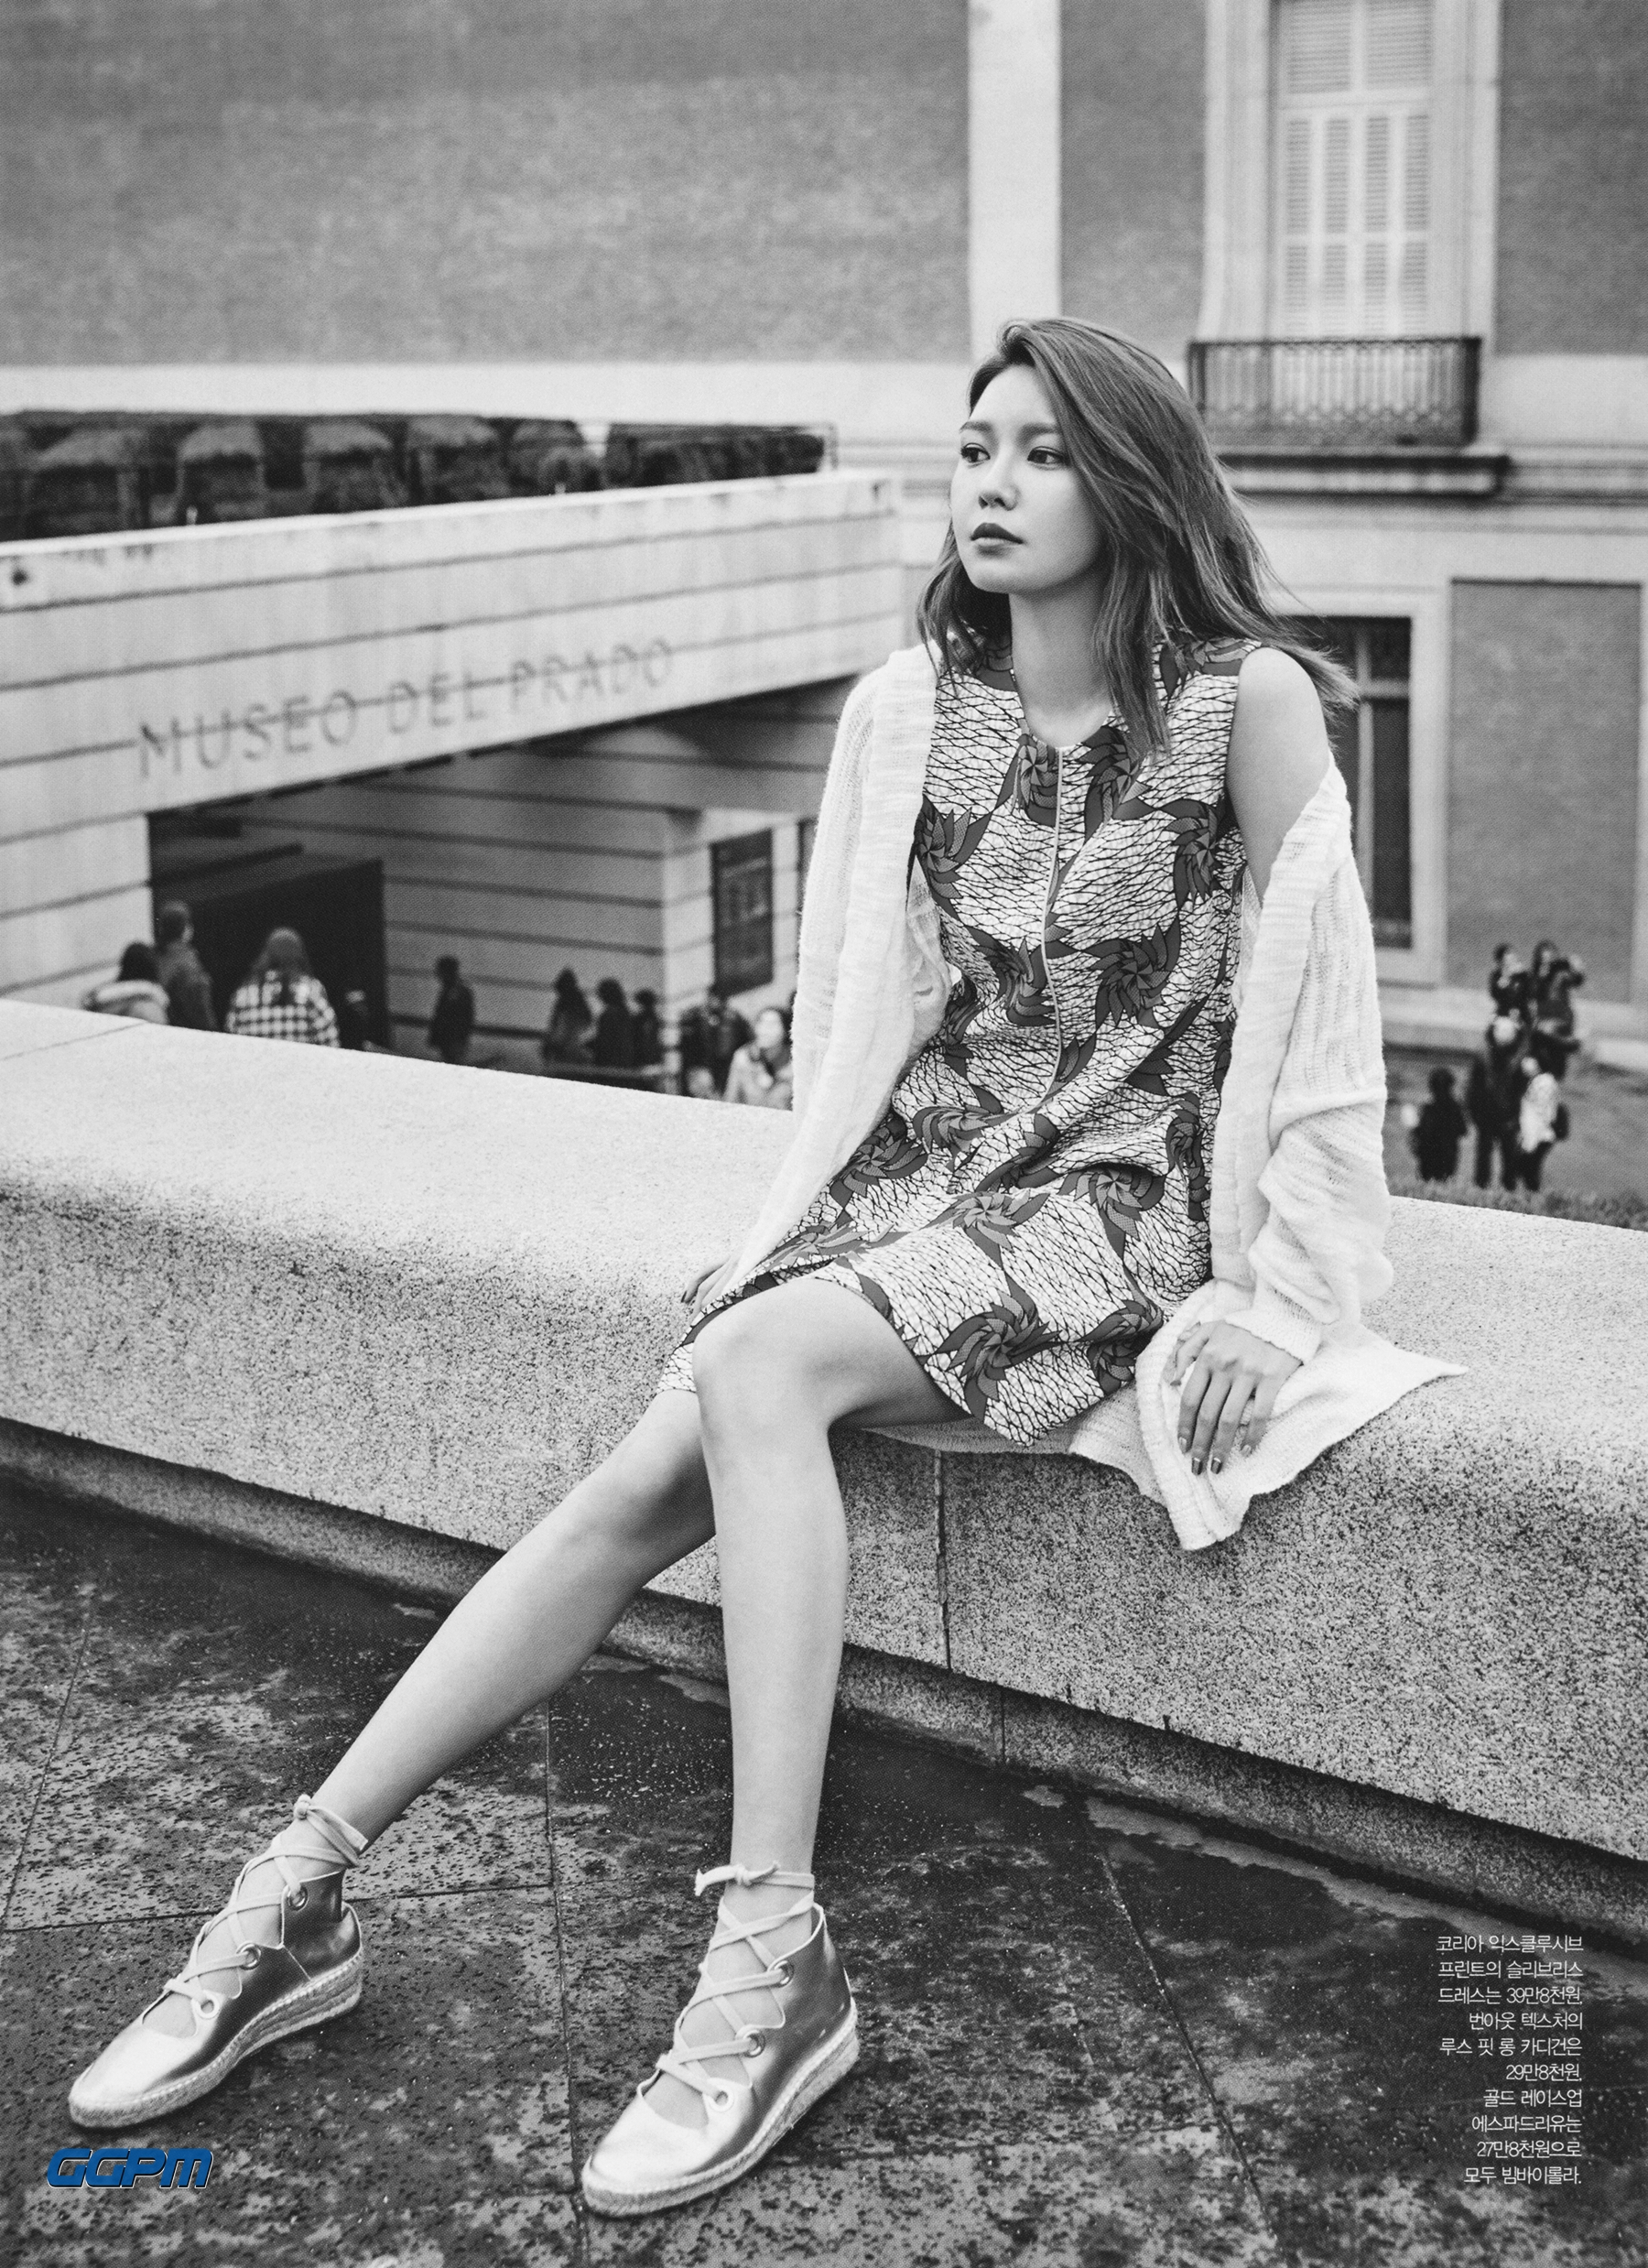 Sooyoung 2017 March InStyle Magazine Manuth Cheks